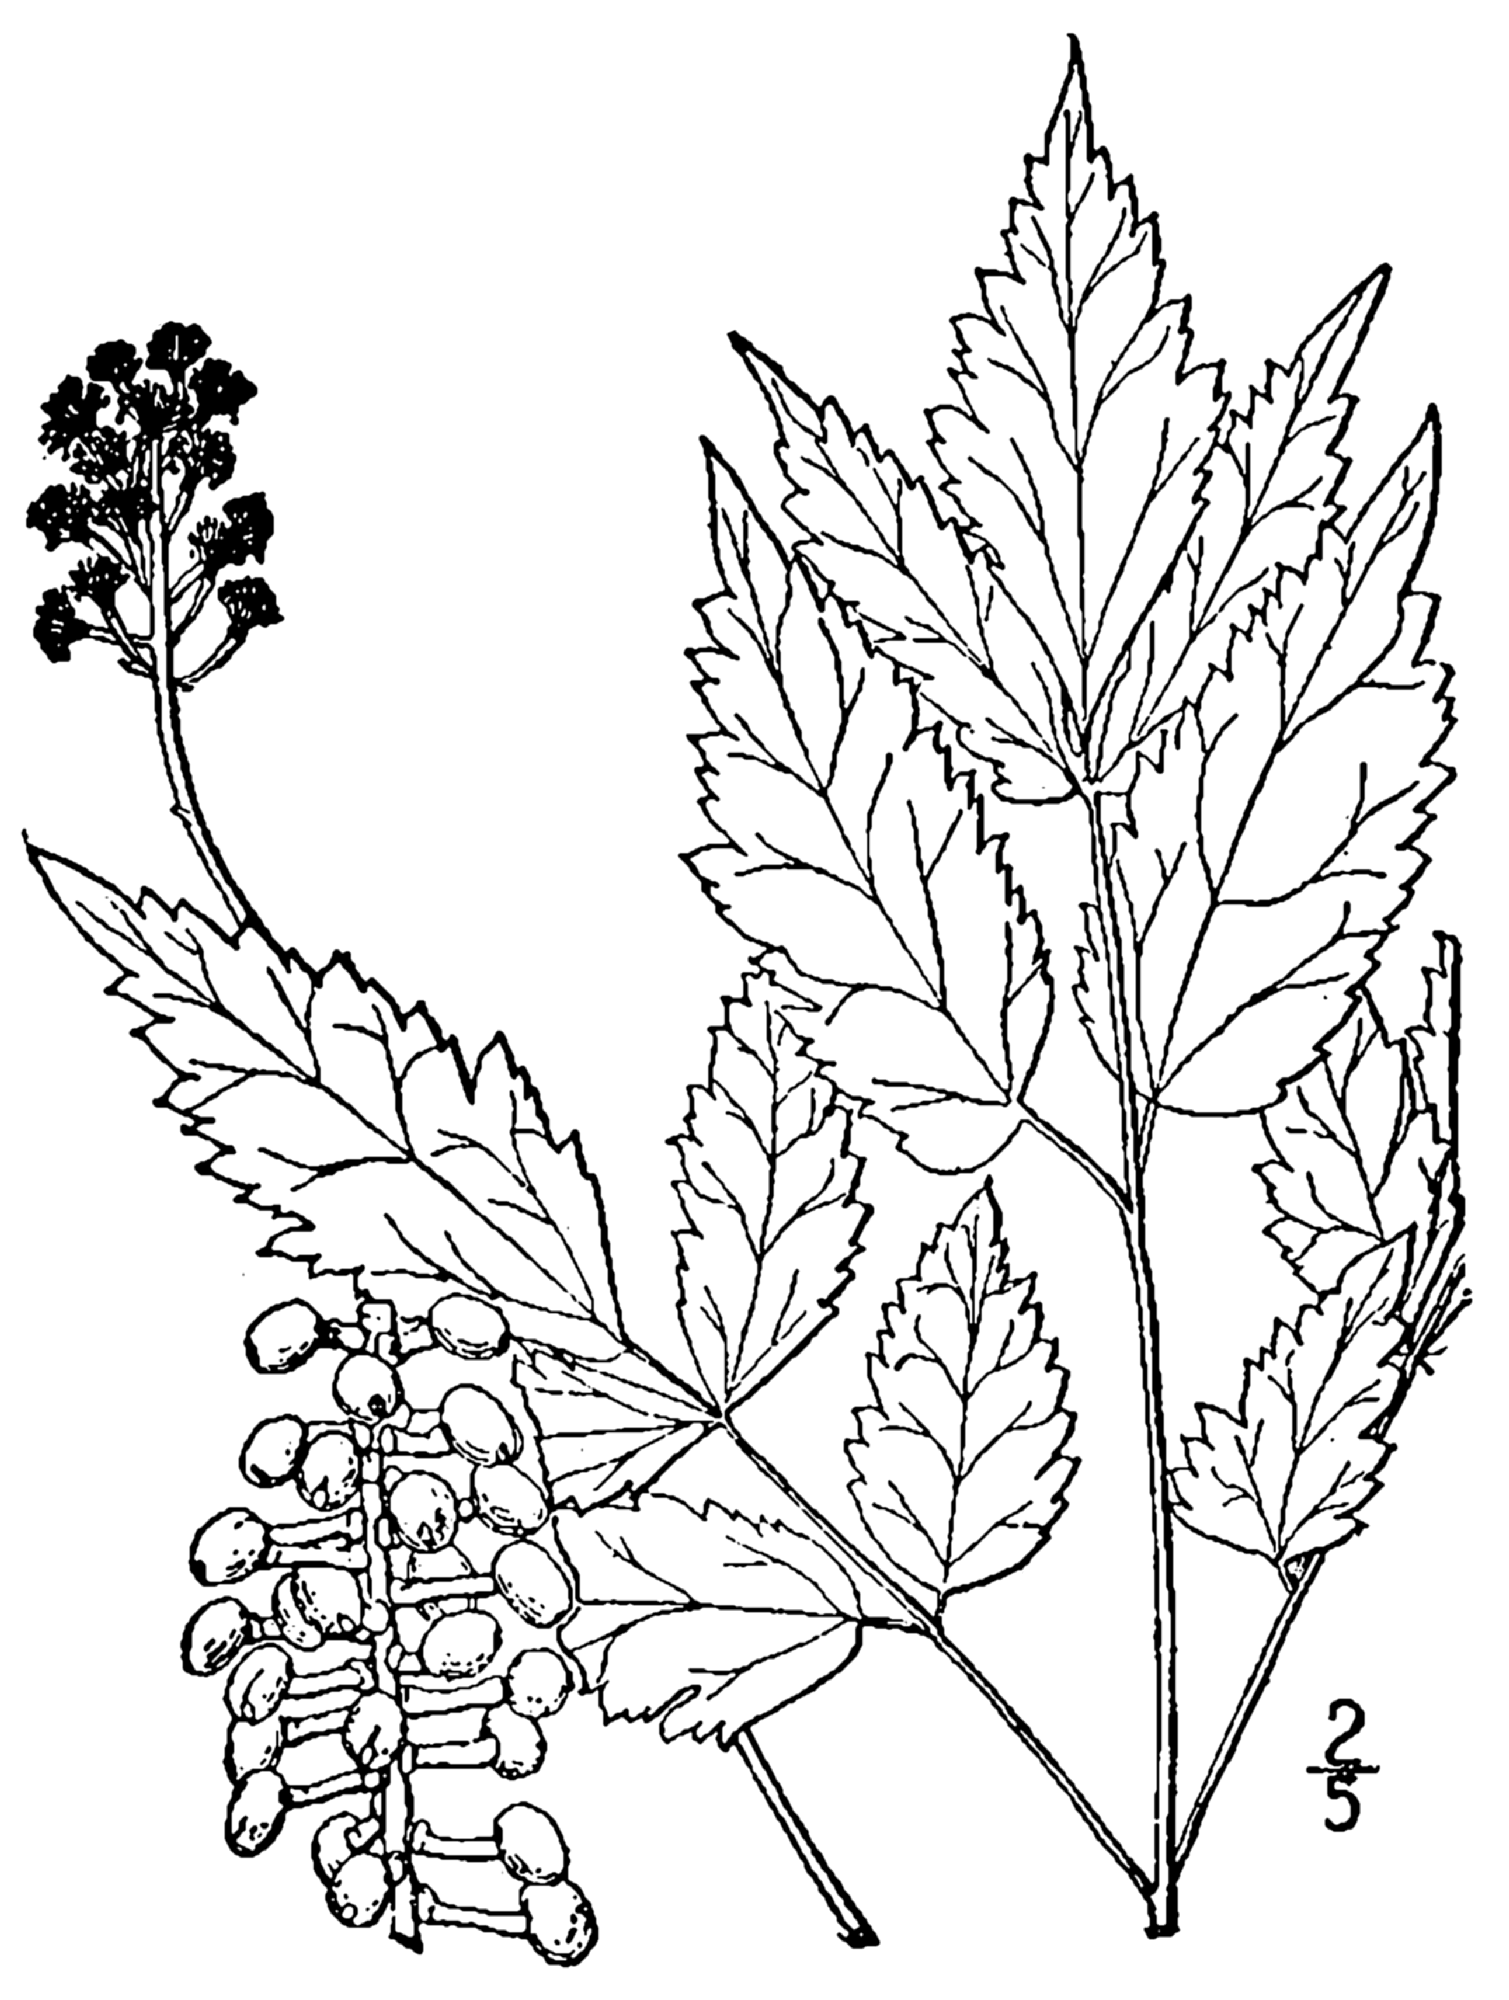 File:Actaea Pachypoda Drawing.png